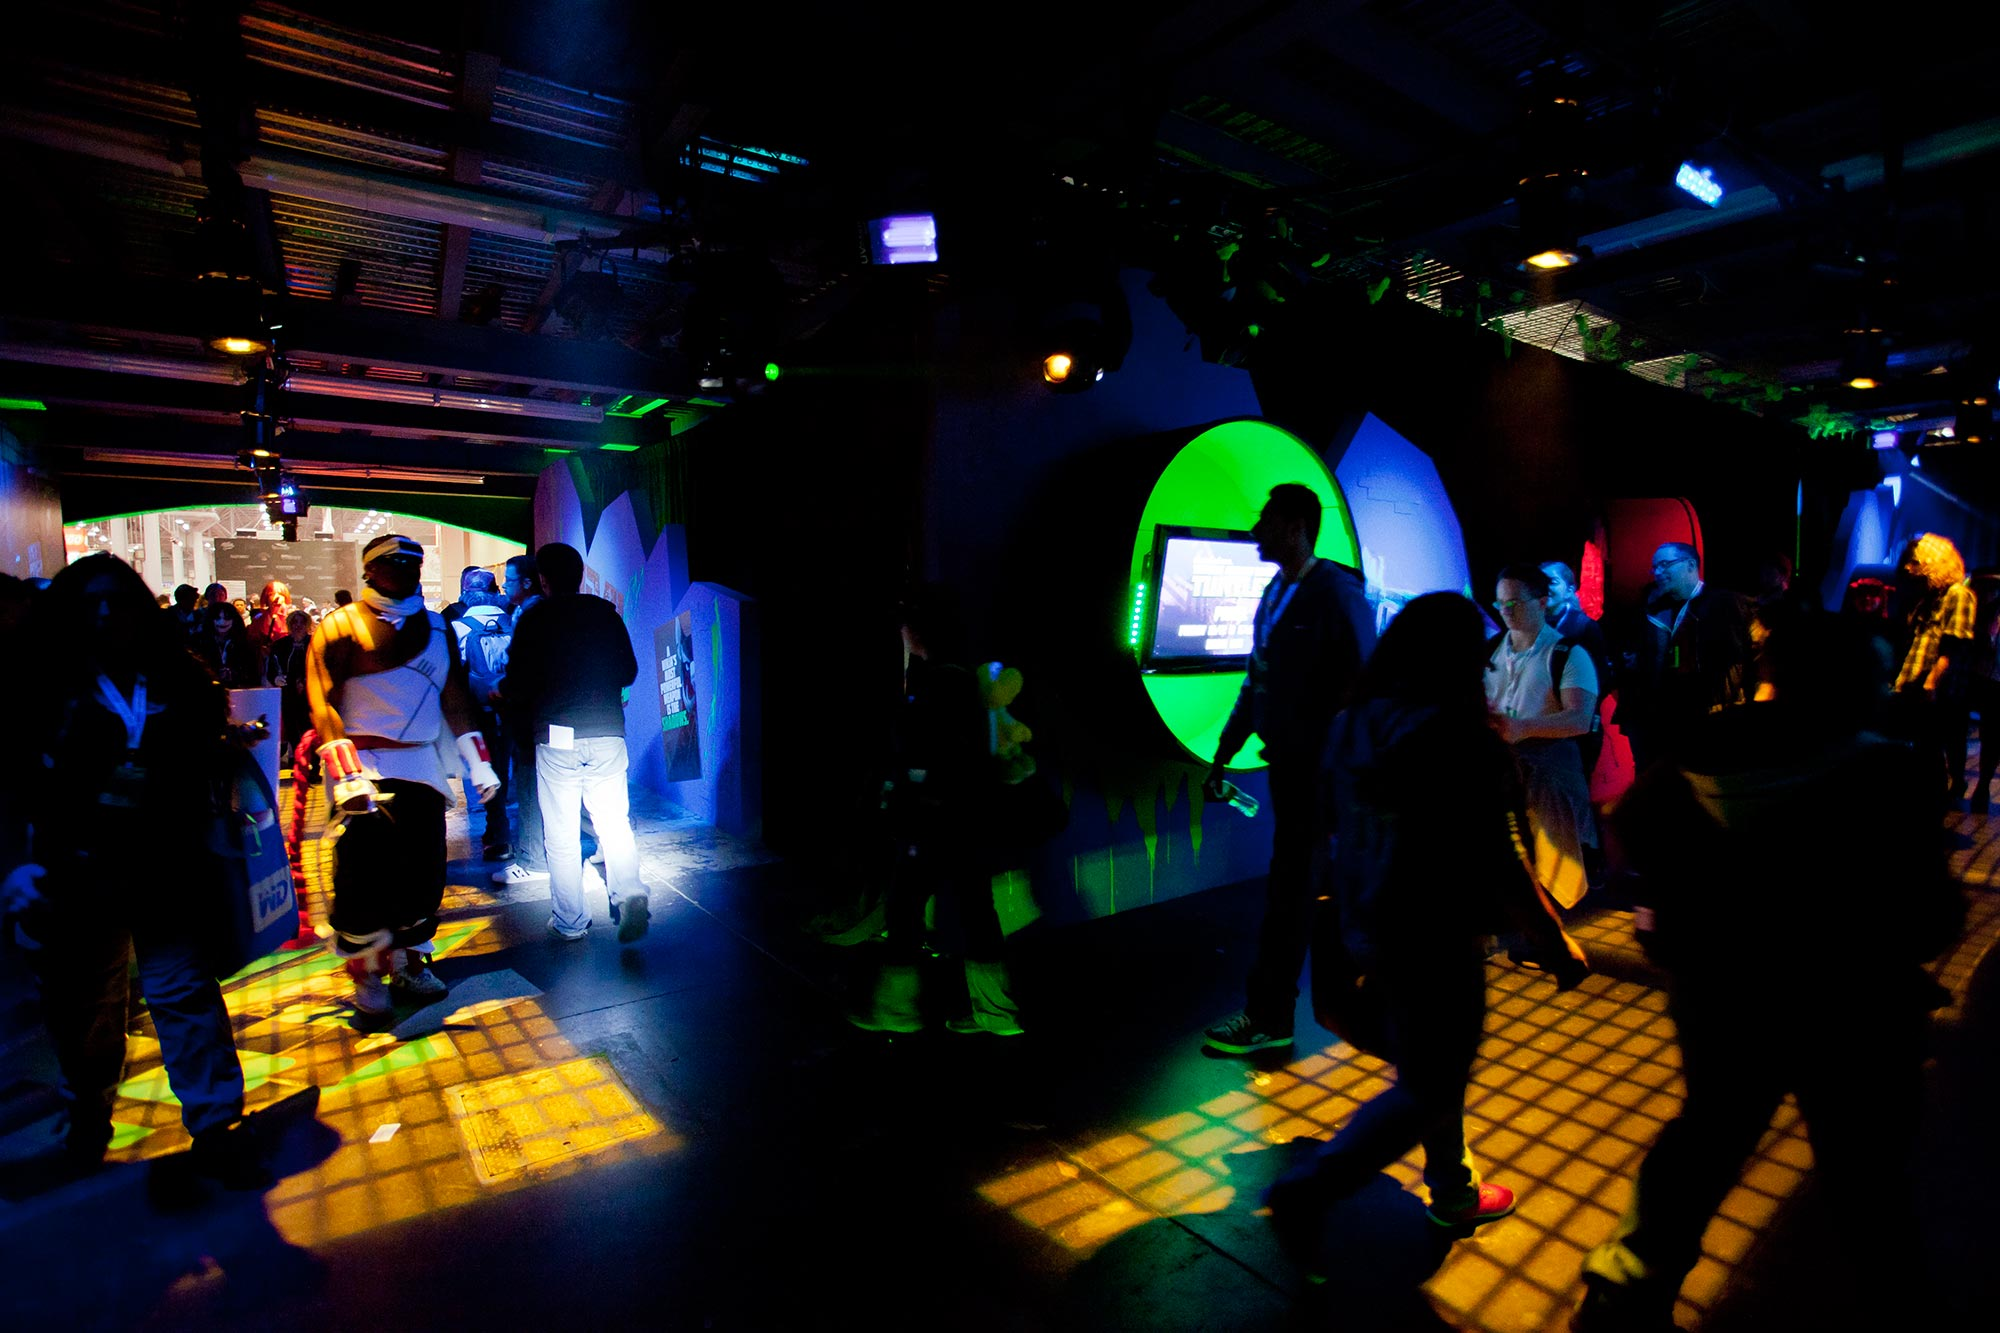 Guests in the TMNT hallway enjoy exclusive content from the Nickelodeon show by peering into sewer tubes.